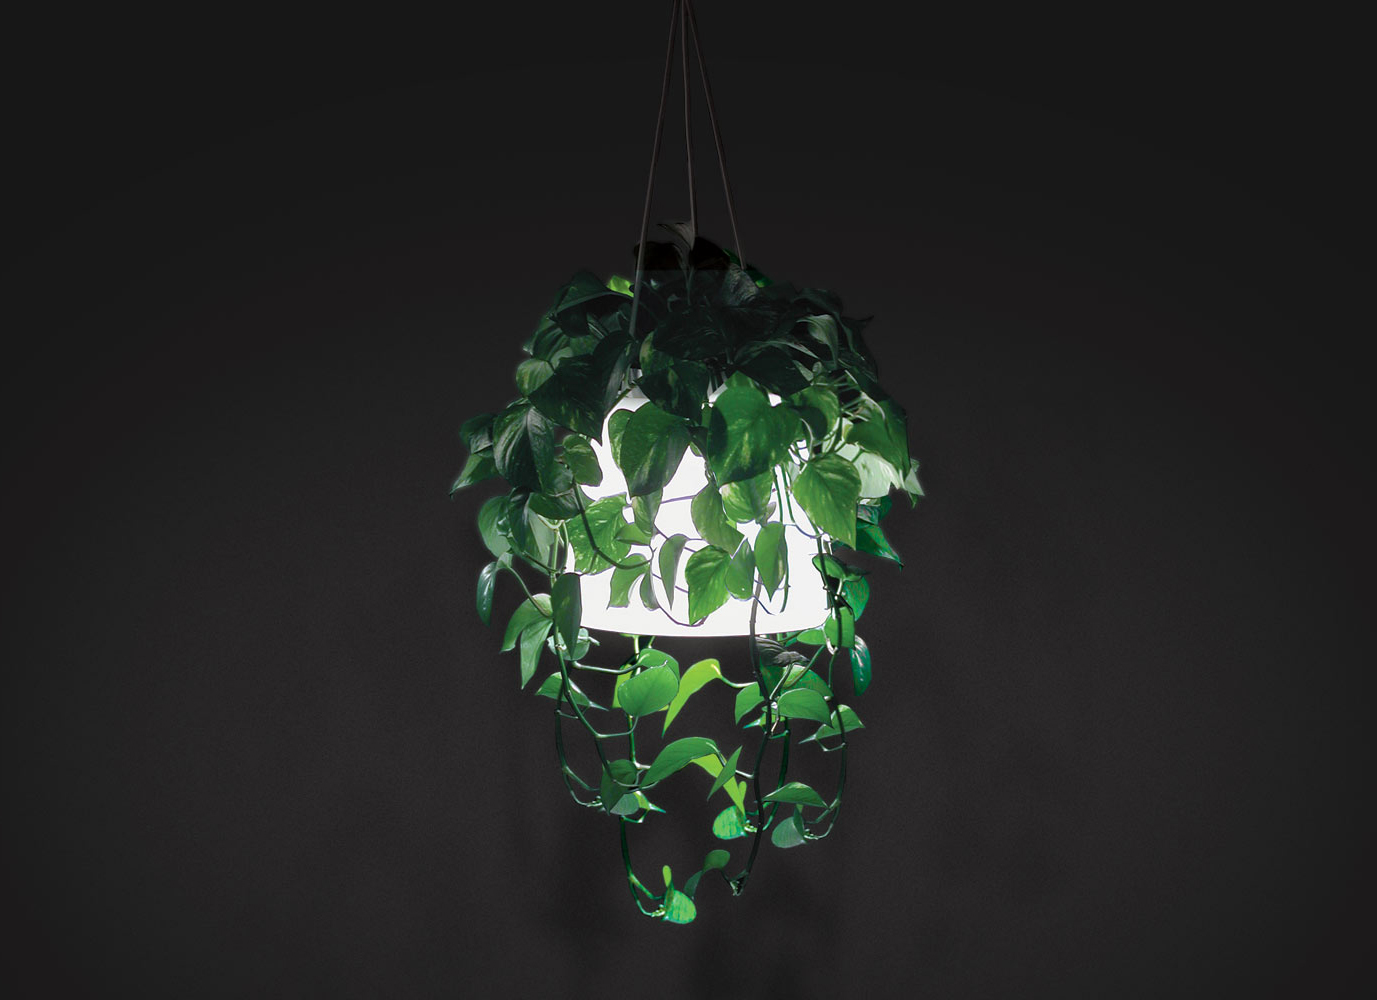 """Flora   Client: Ikea 2004  This concept lamp by Clabots won a design competition for Ikea at the University of Art and Design in Helsinki, and was selected for production. It combined a hanging planter and a light. The branches and leaves of the plant hung over the shade, and the shadows created by the leaves gave the light an organic element - something artificial light typically lacks. Because of its dual use, the lamp was invisible beneath the foliage when not in use.  Award:  Ikea Design Competition Winner 2004   Exhibition:  AmDC show """"Outside of Sorts"""" 2008"""